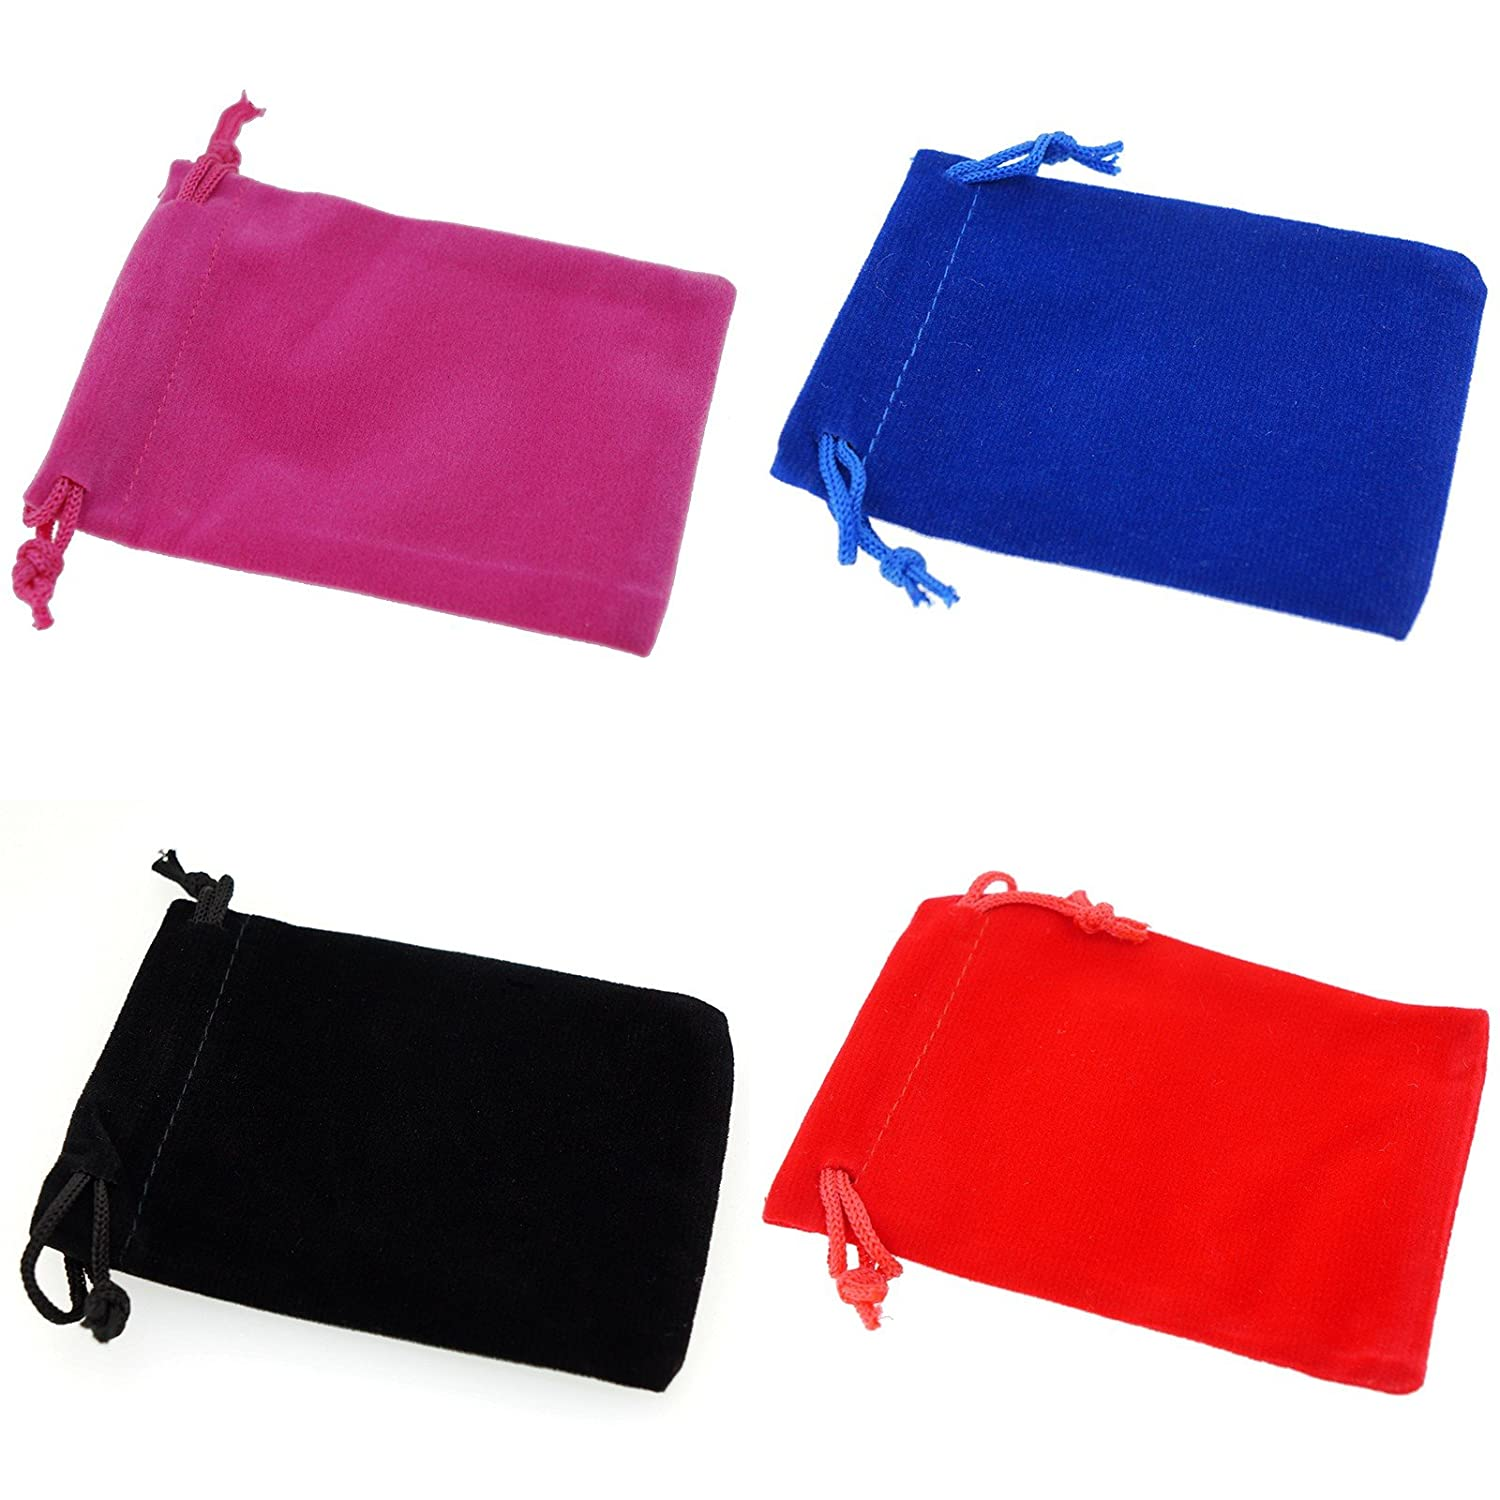 Pack of 8 Mix Color Soft Velvet Pouches w Drawstrings for Jewelry Gift Packaging 9x12cm